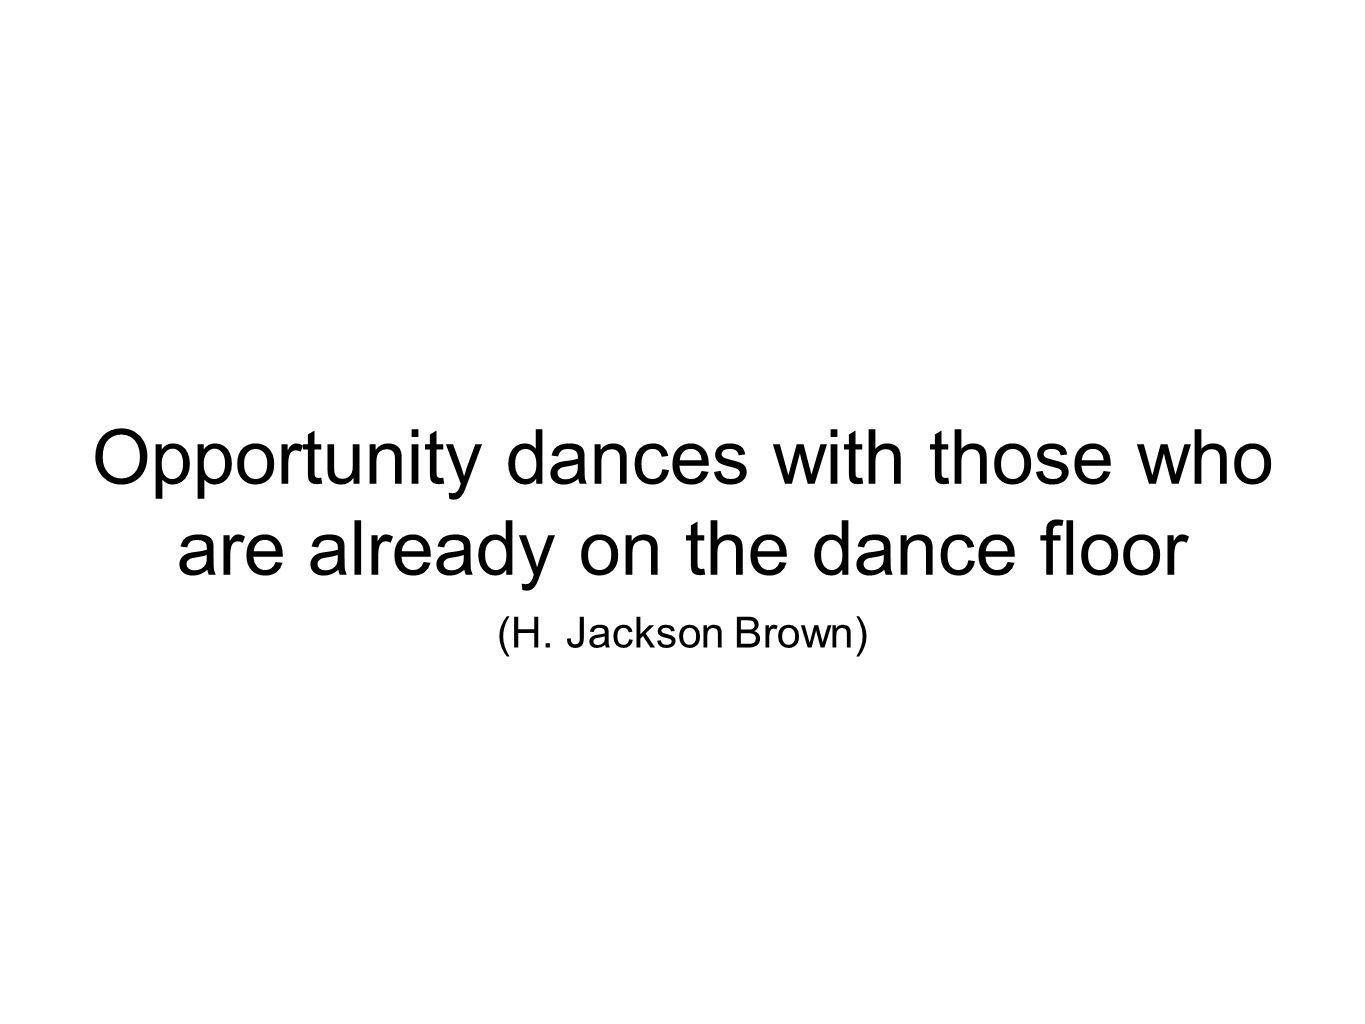 Opportunity dances with those who are already on the dance floor (H. Jackson Brown)